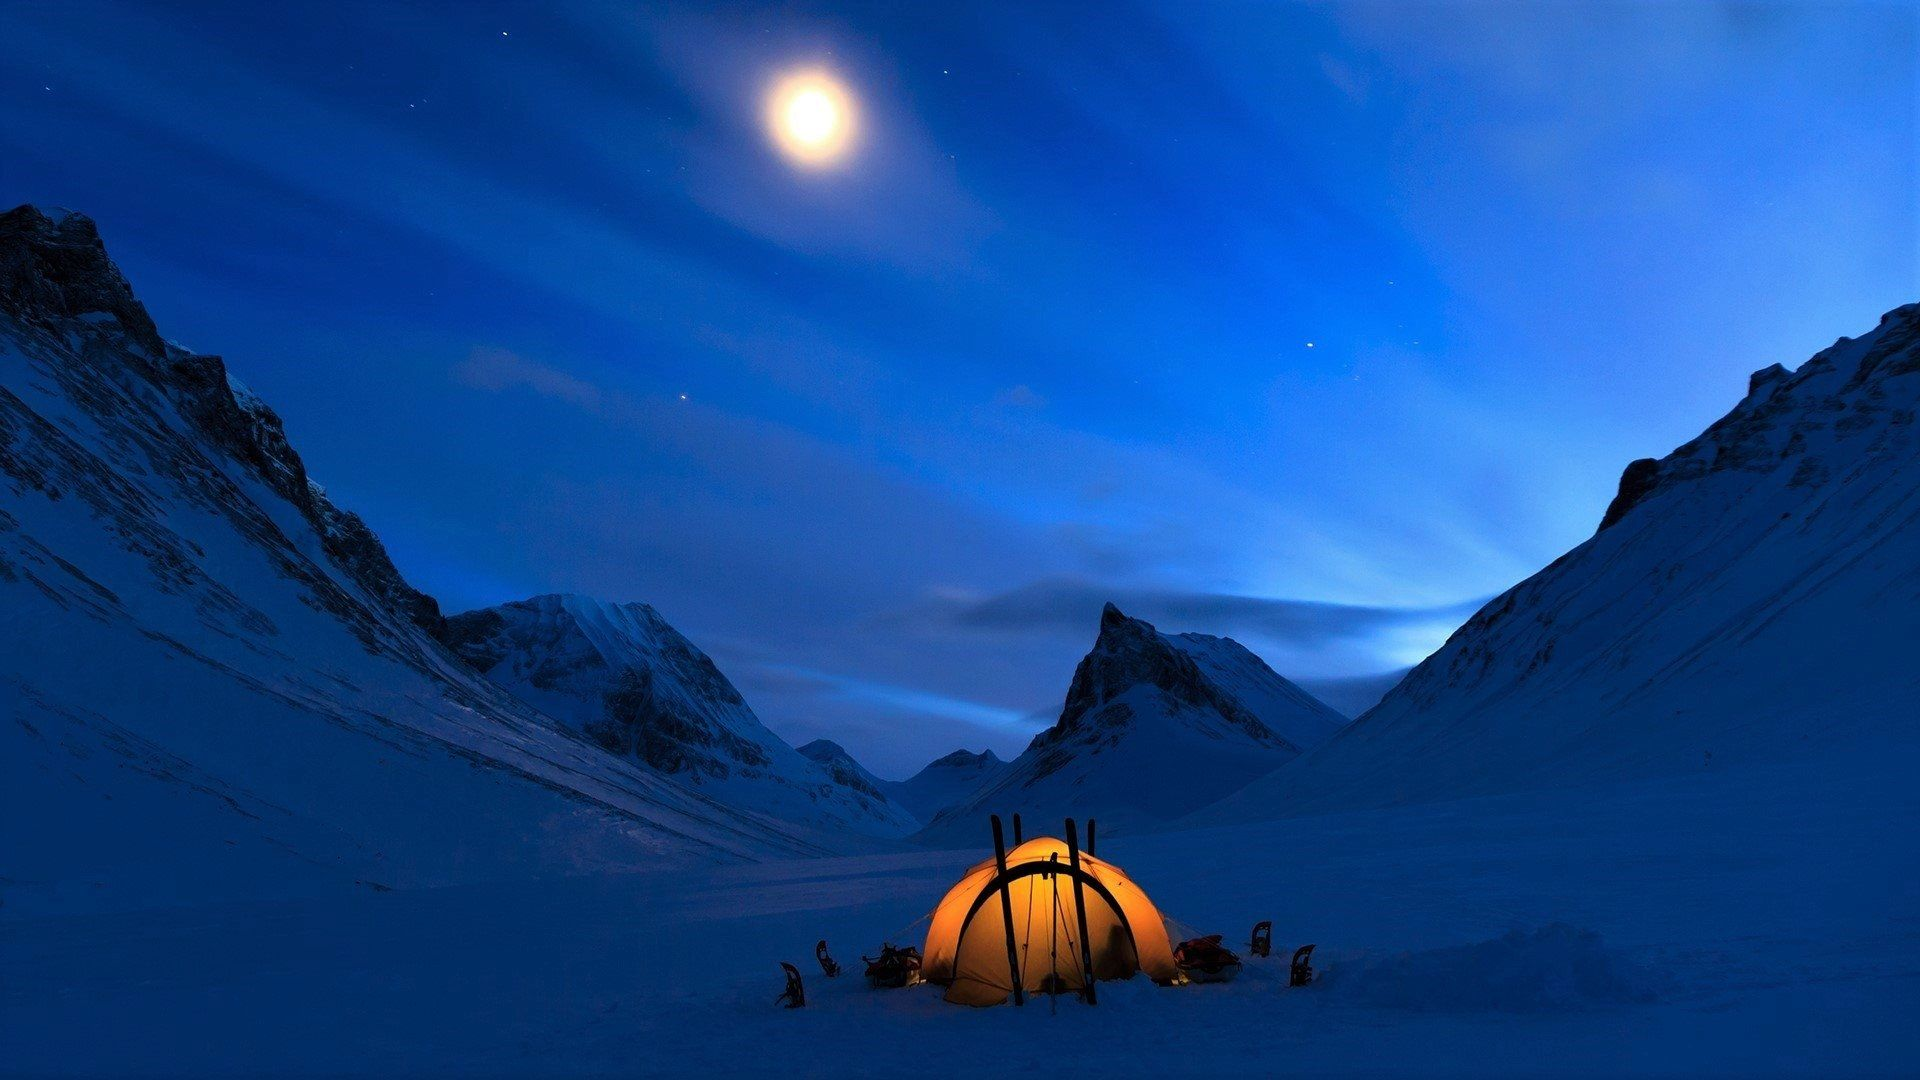 Winter Camping Wallpapers - Top Free Winter Camping ...